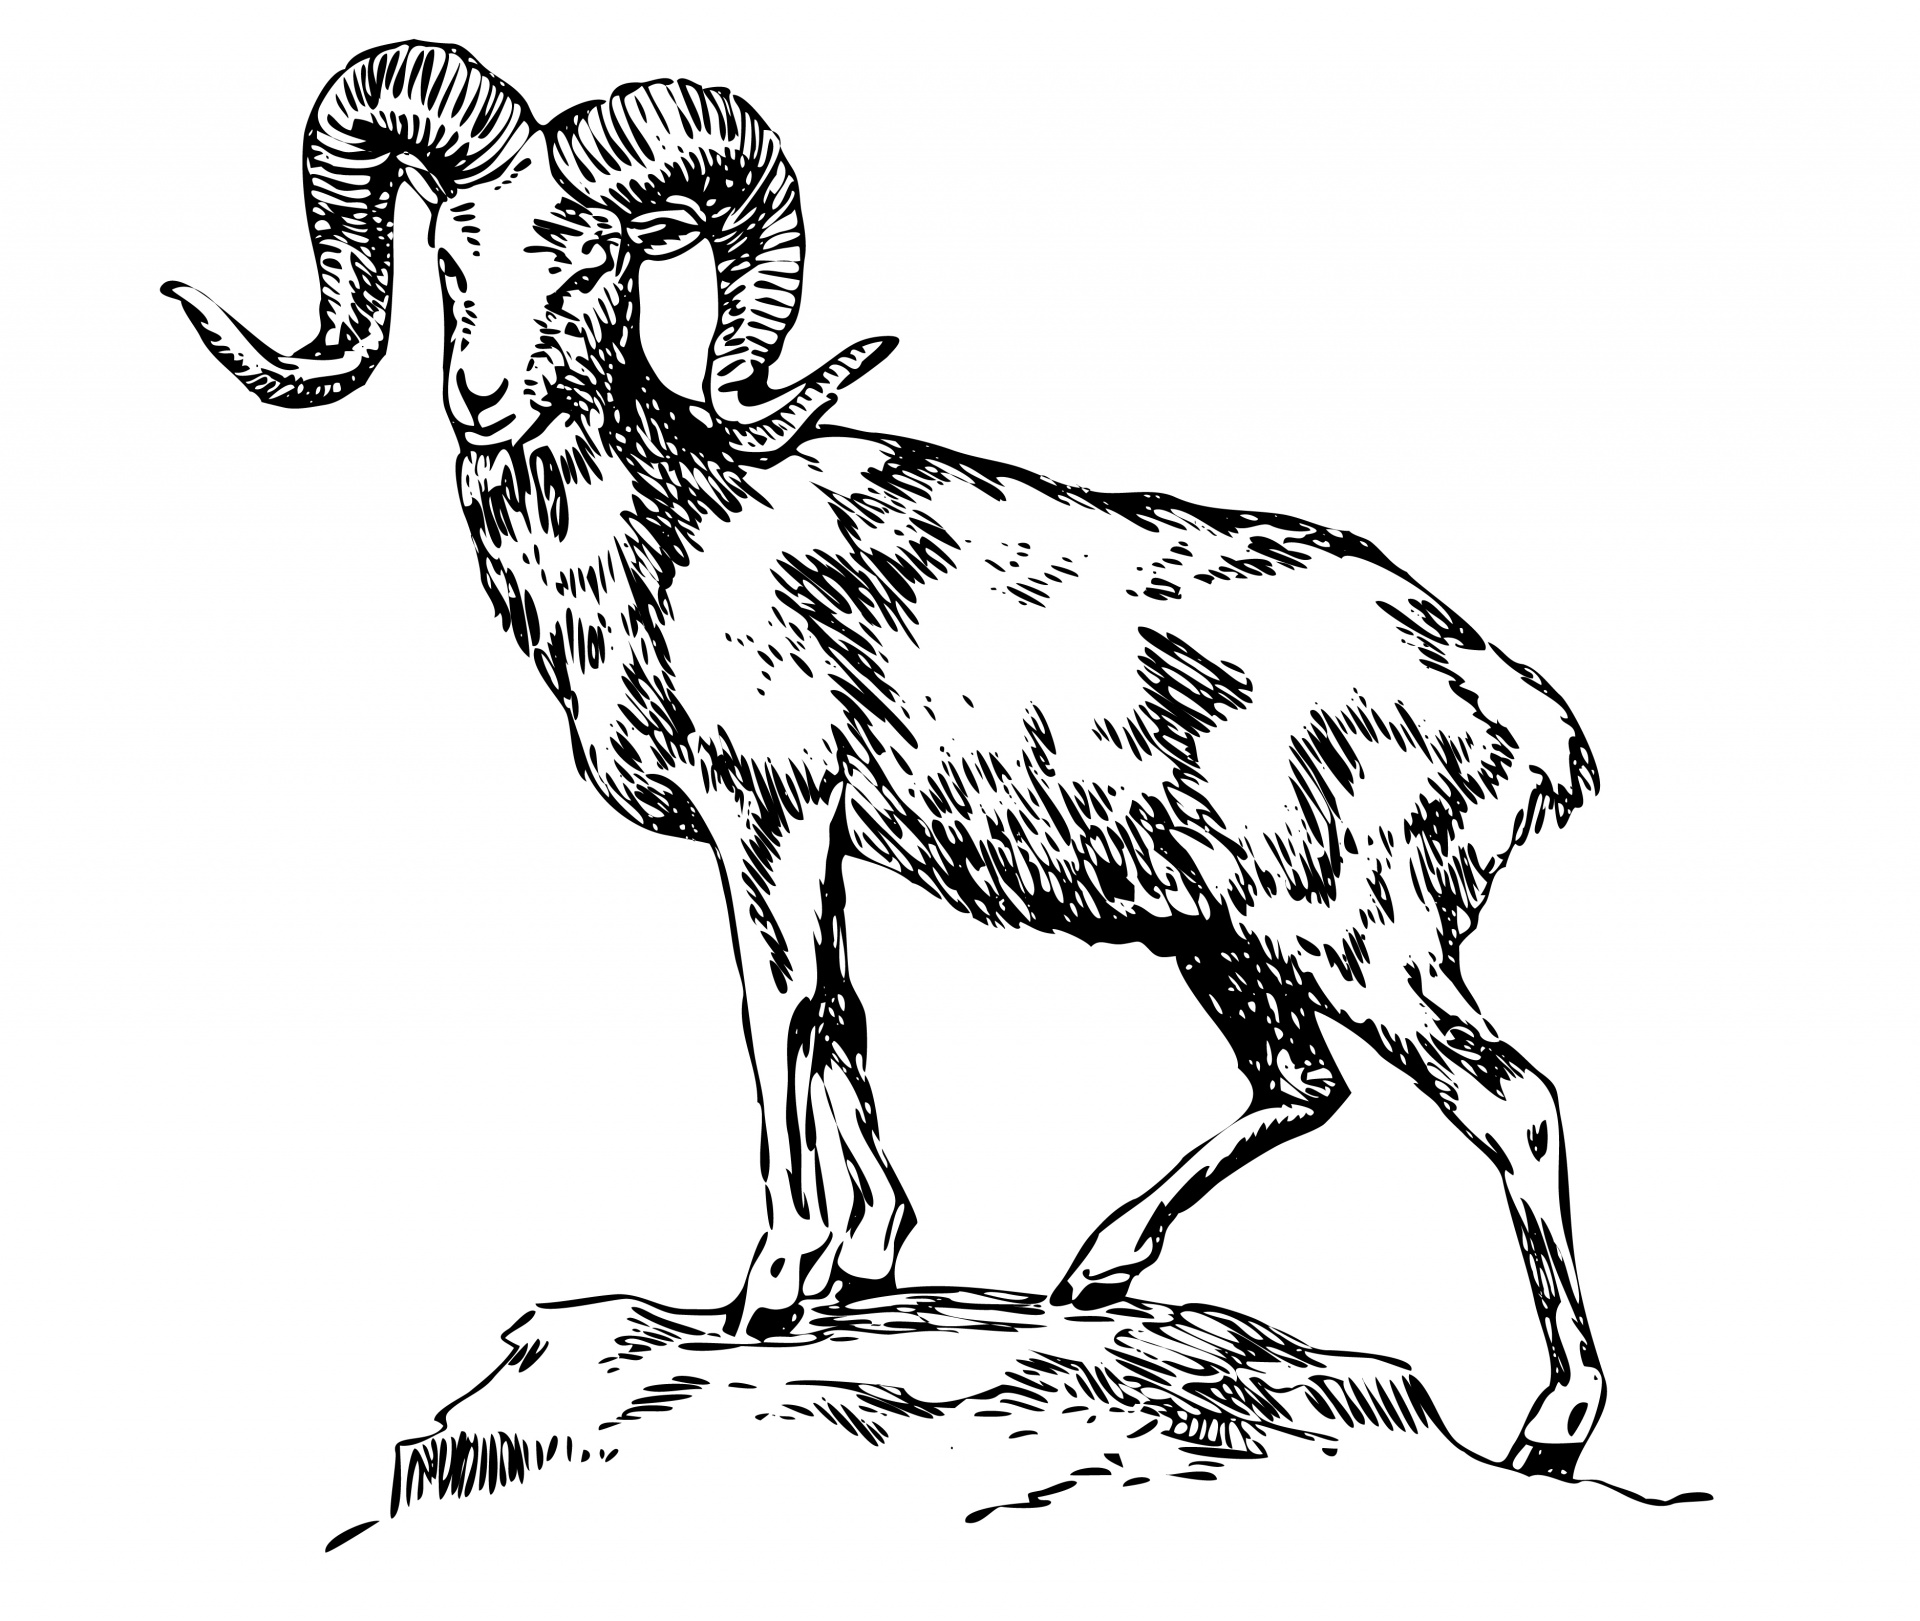 Artistic ram head clipart black and white clip royalty free Mountain Sheep Illustration Clipart Free Stock Photo - Public ... clip royalty free